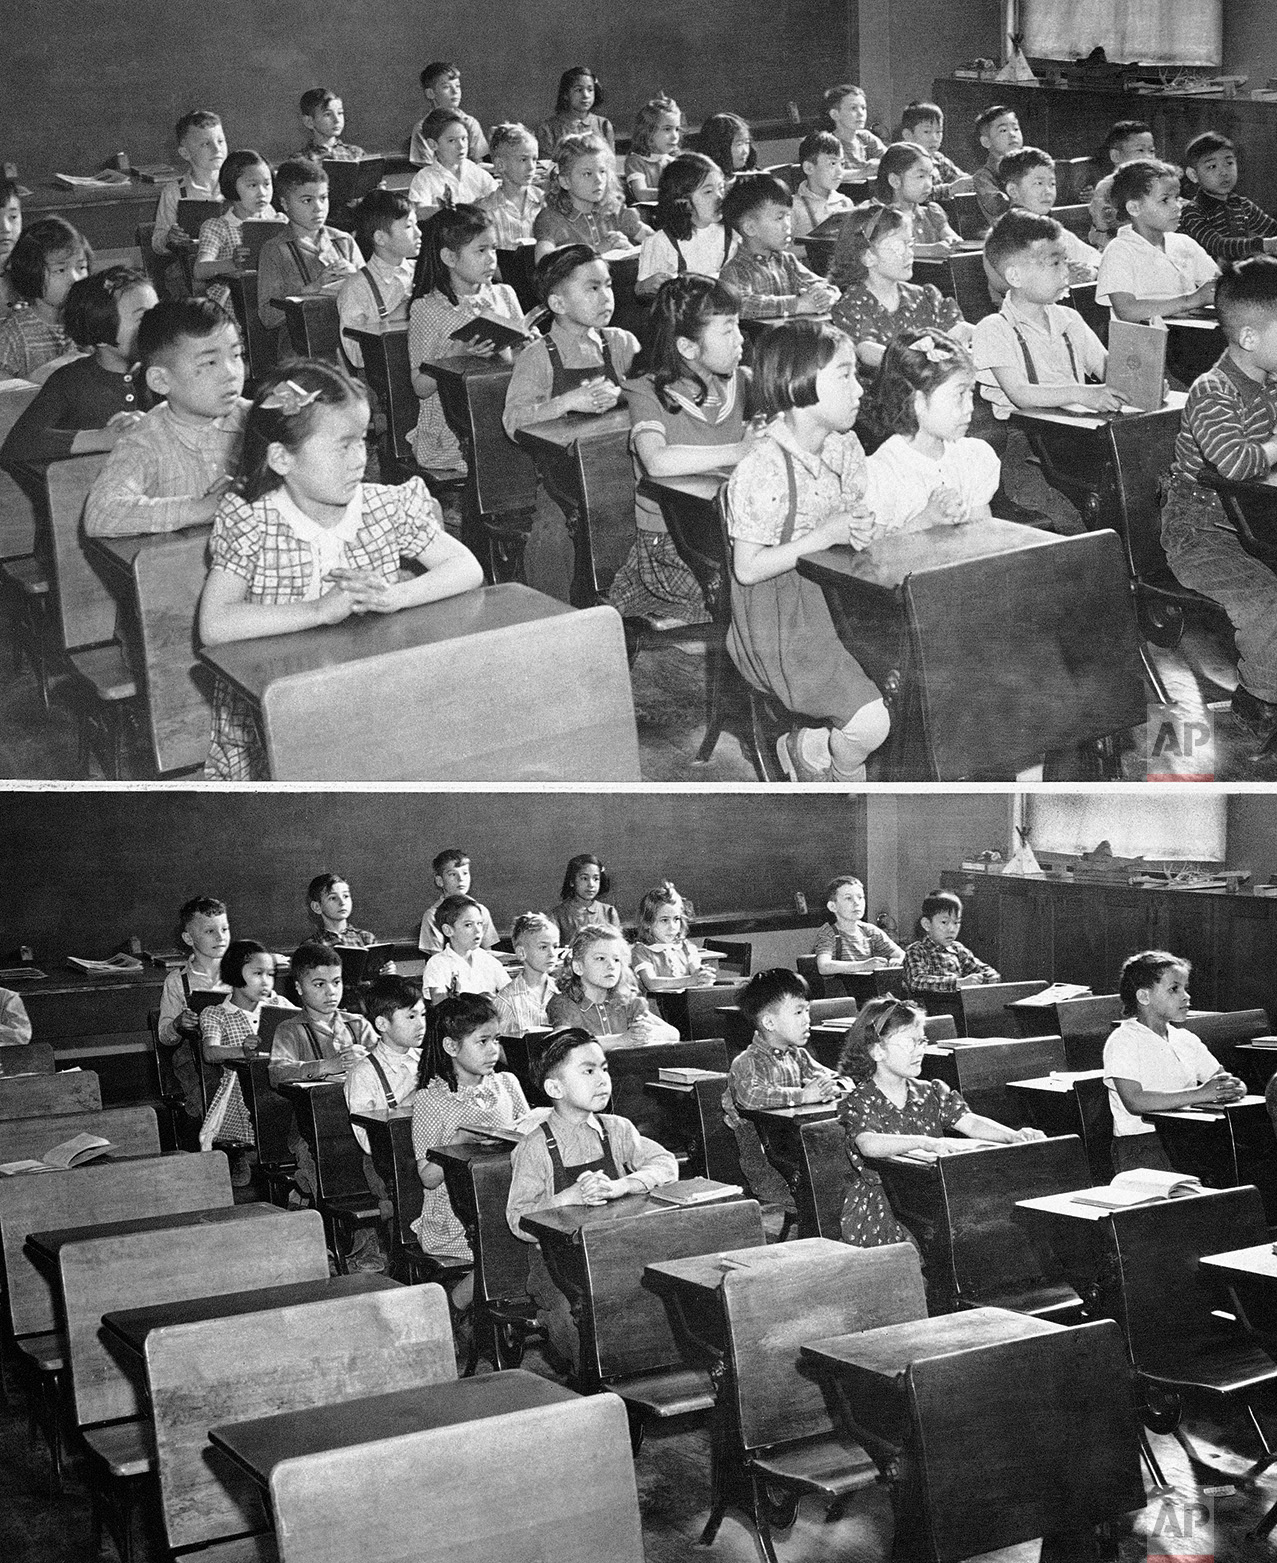 How evacuation of Japanese from Seattle would affect a second grade class in a local school is shown in these two views in Seattle, Wash., March 27, 1942. At the top is a crowded classroom with many Japanese pupils and at the bottom is the same class without the Japanese scholars. Vacancies caused by such an evacuation would probably be filled by children of defense workers moving into a nearby housing project. (AP Photo)